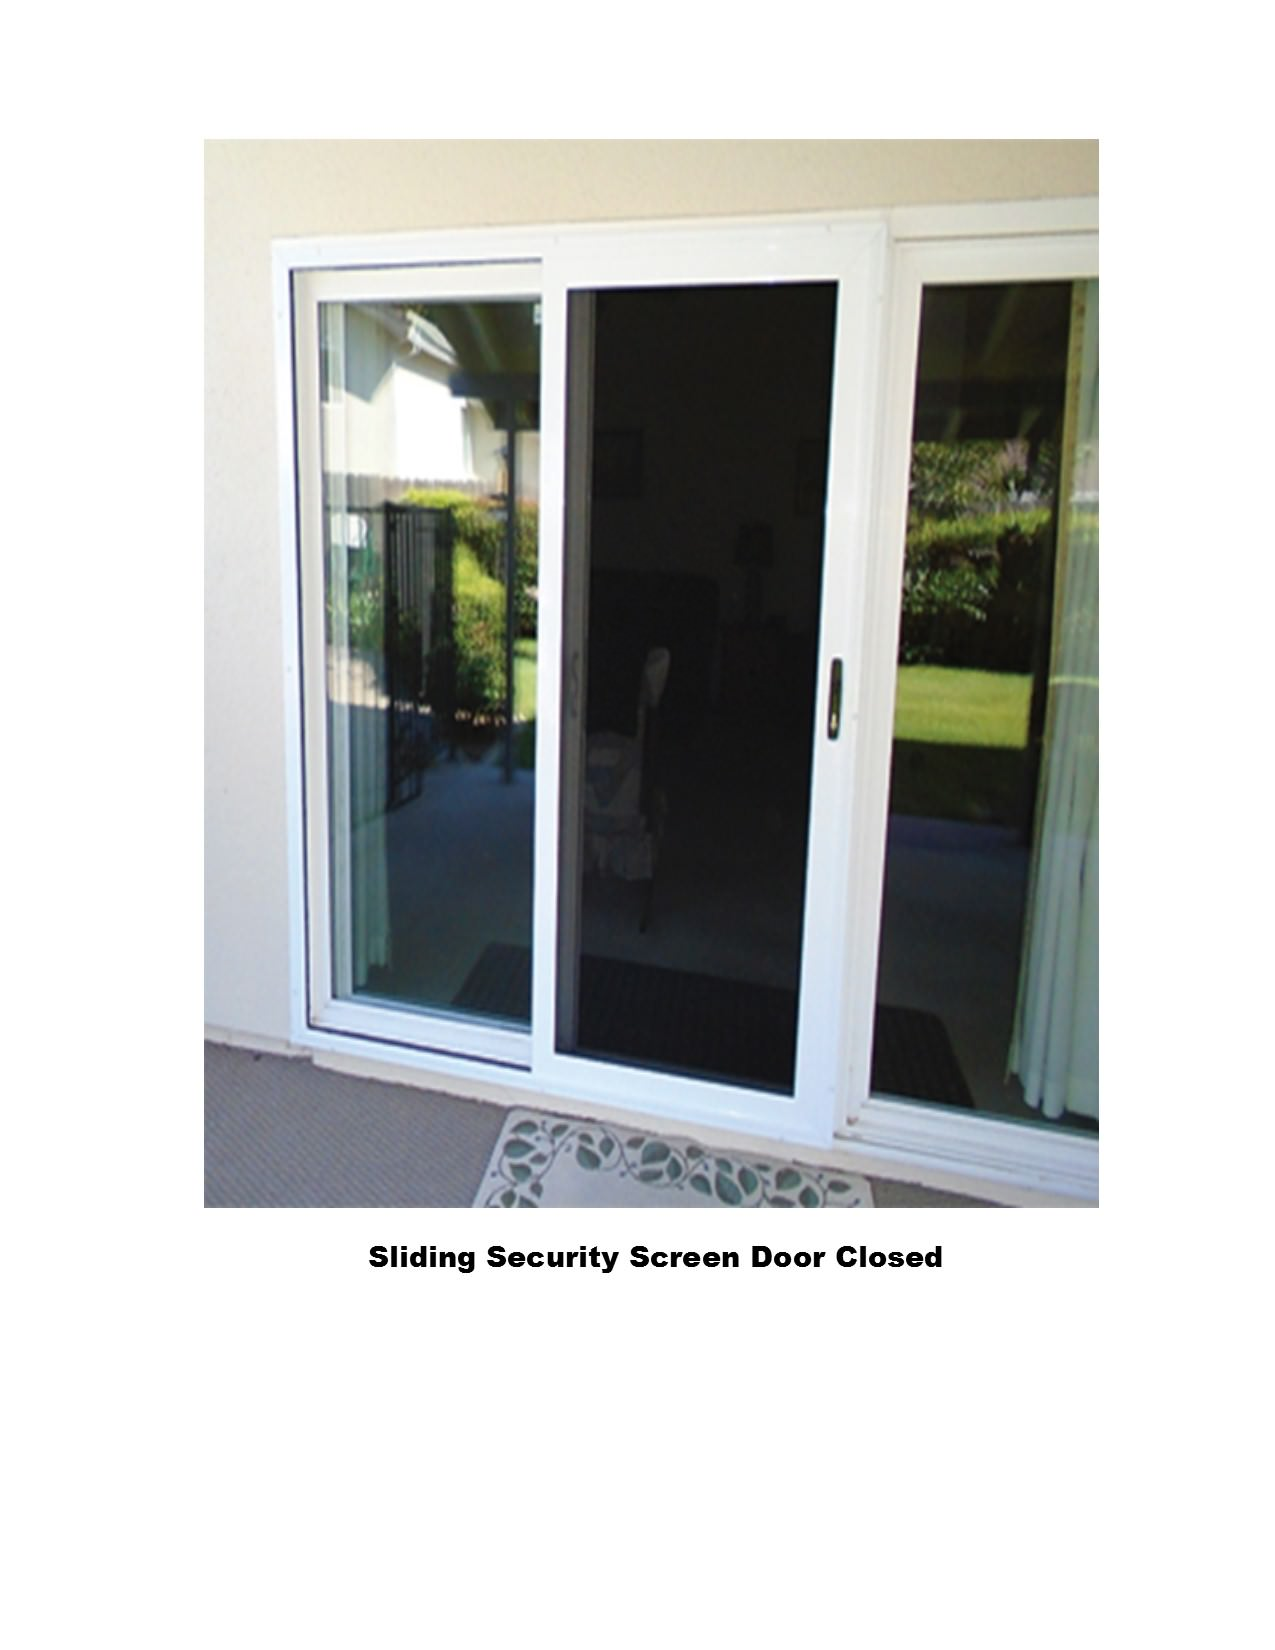 Sliding security screen doors screens 4 less for Sliding glass doors security